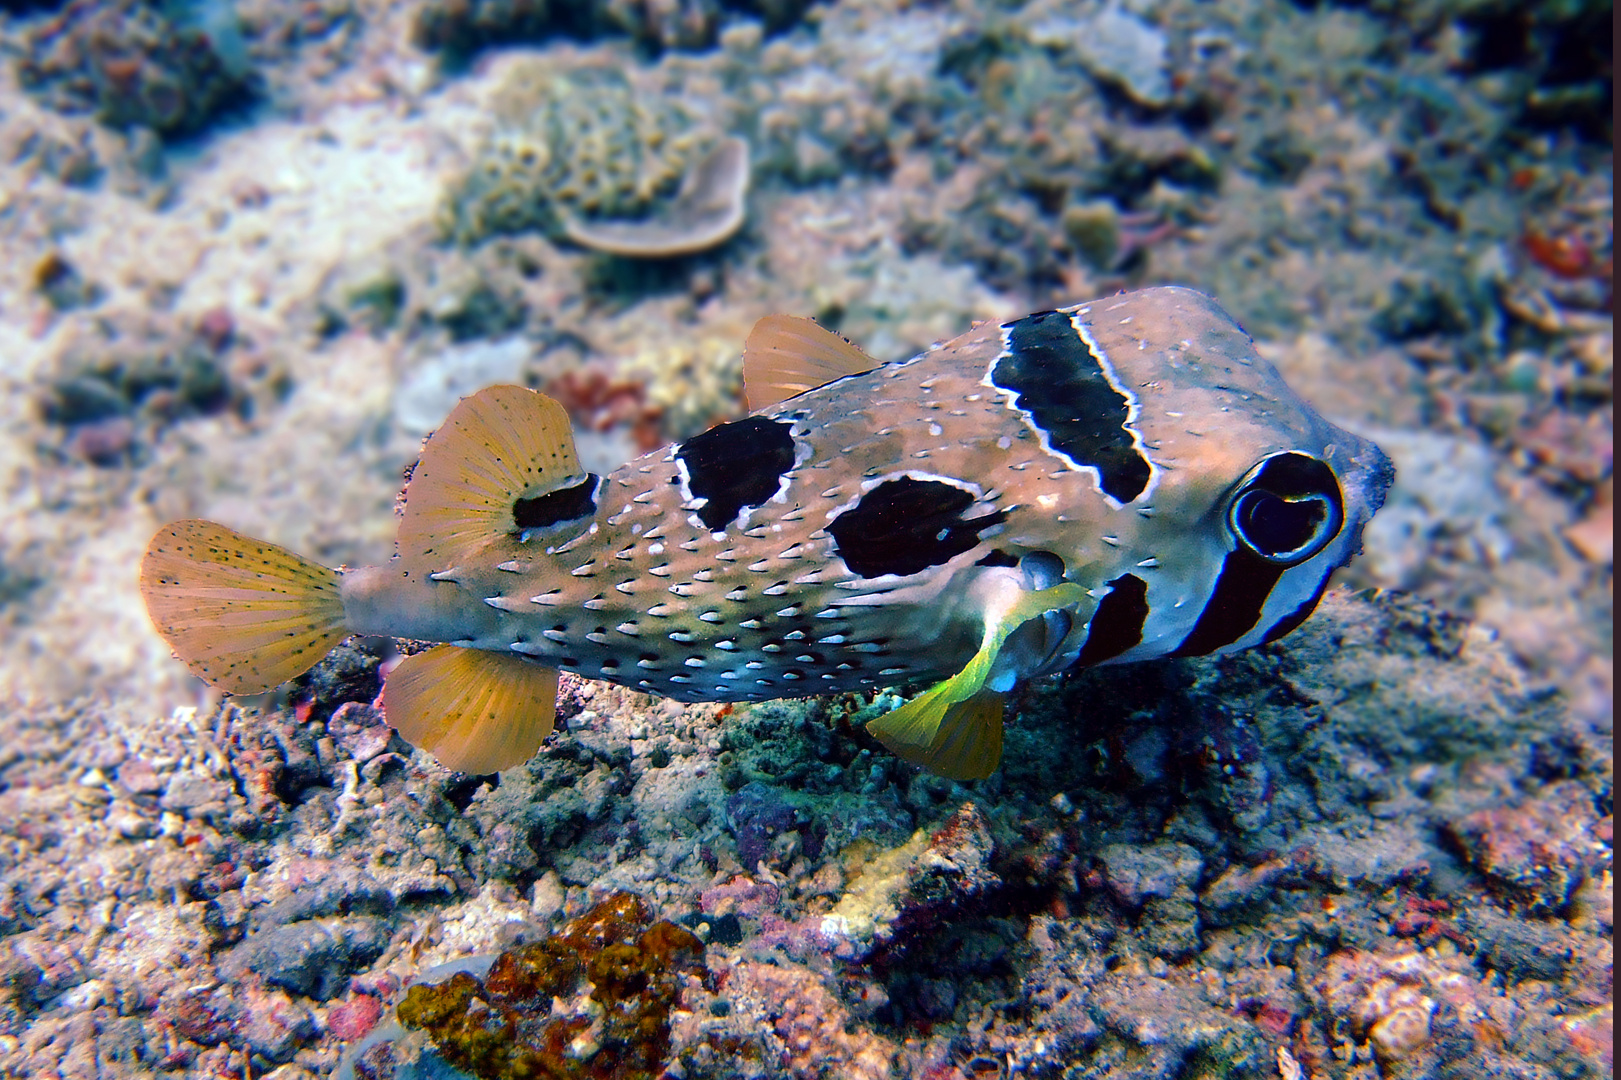 Porcupinefish in shallow water